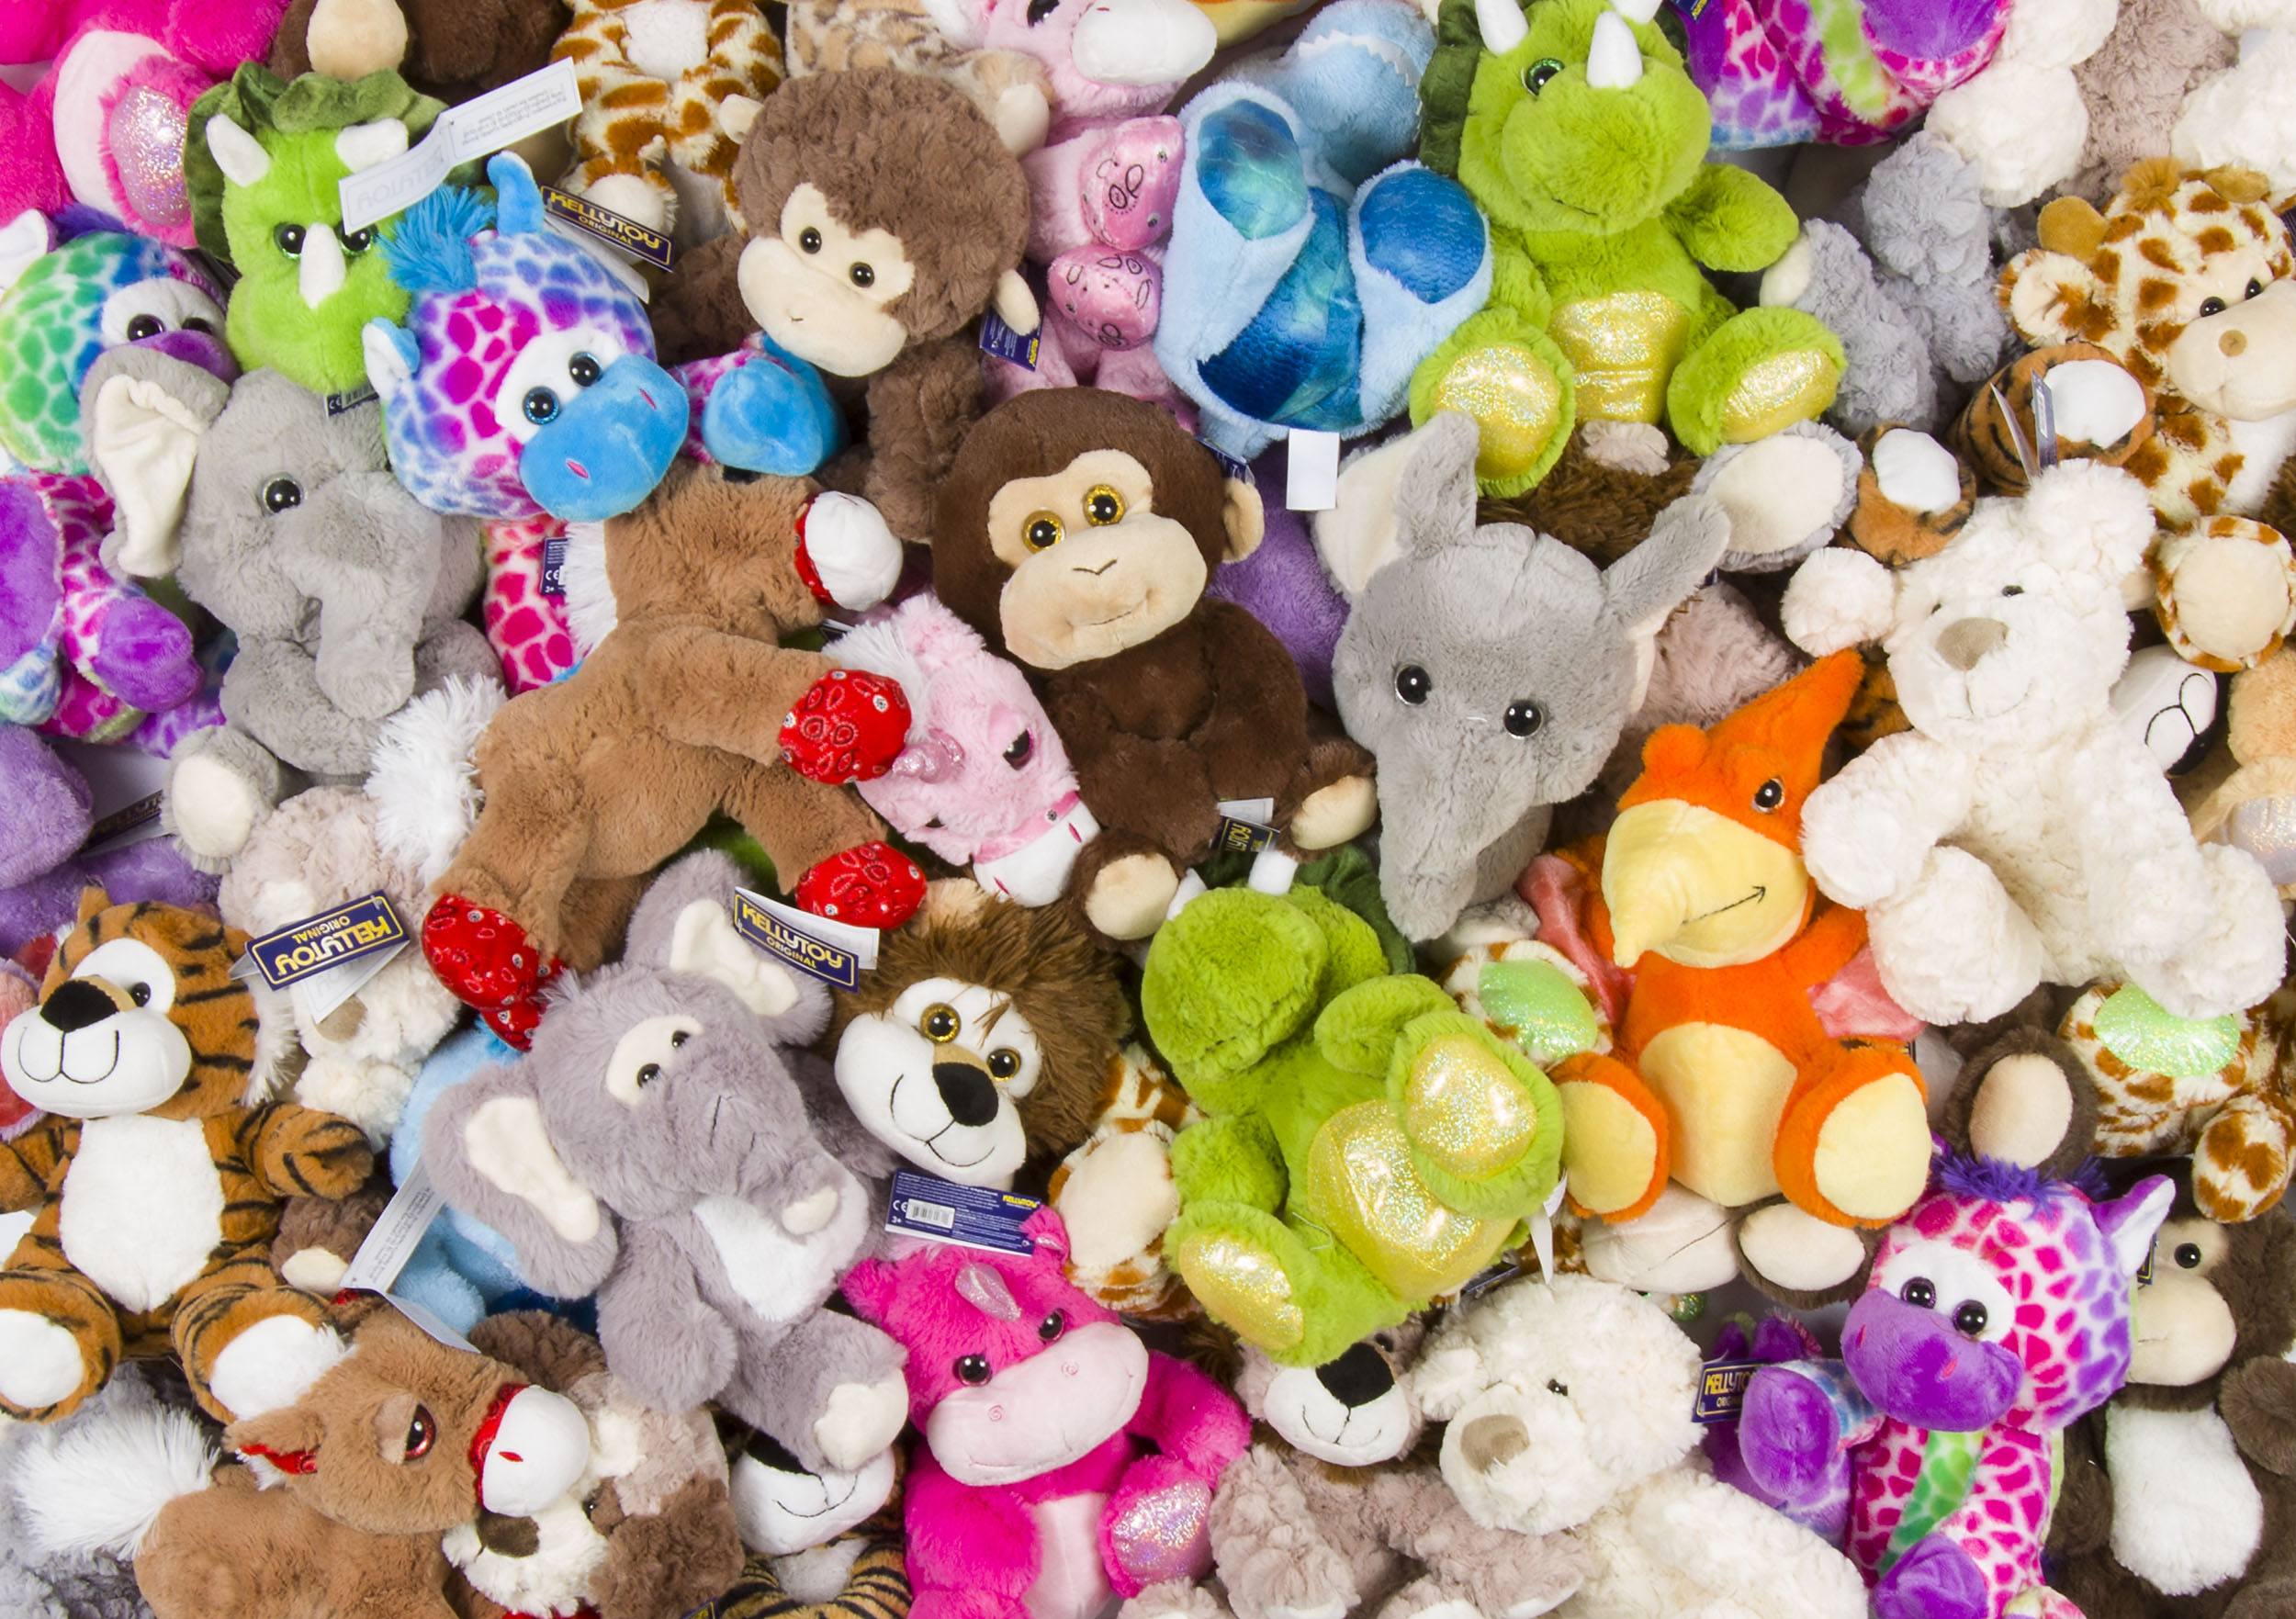 Stuff you should know about stuffed animals